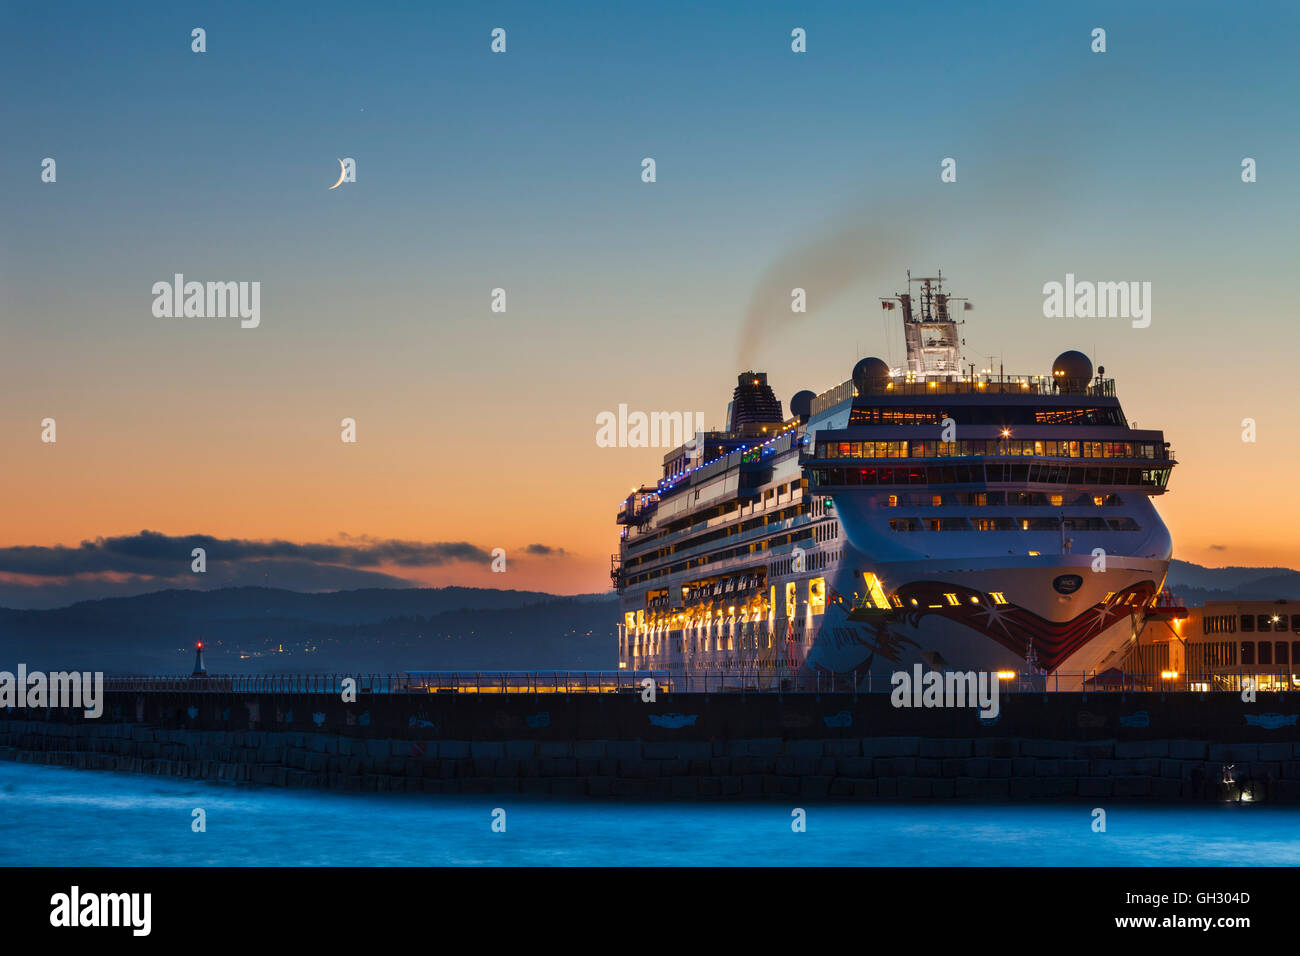 Luxury cruise ship Norwegian Jewel berthed at Ogden Point-Victoria, British Columbia, Canada. - Stock Image